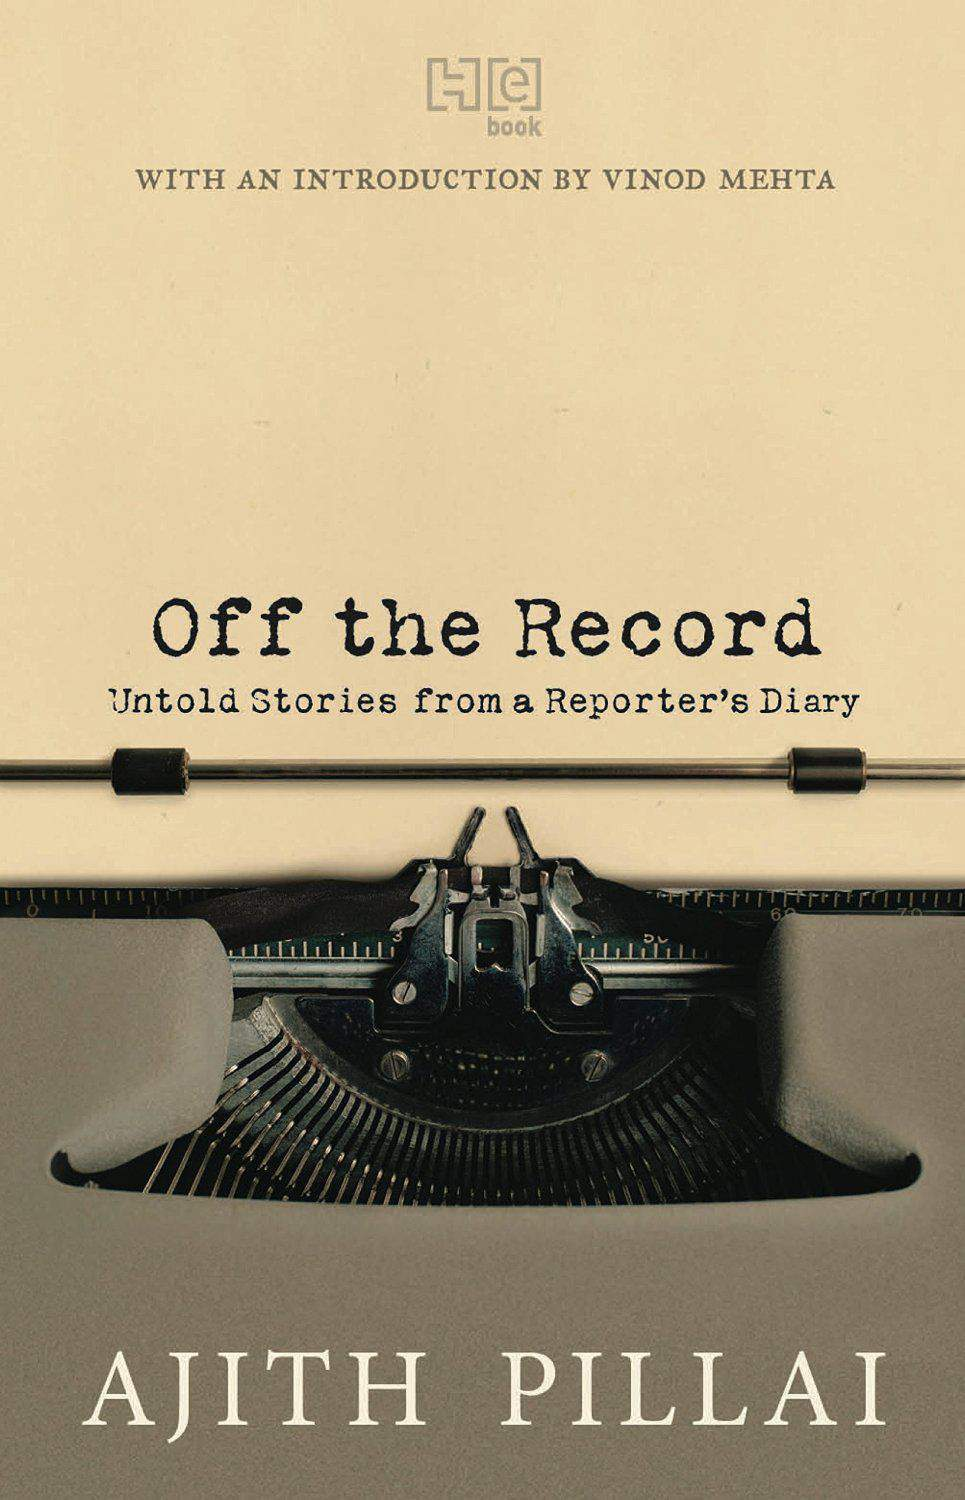 Off the Record Untold Stories from a Reporters Diary